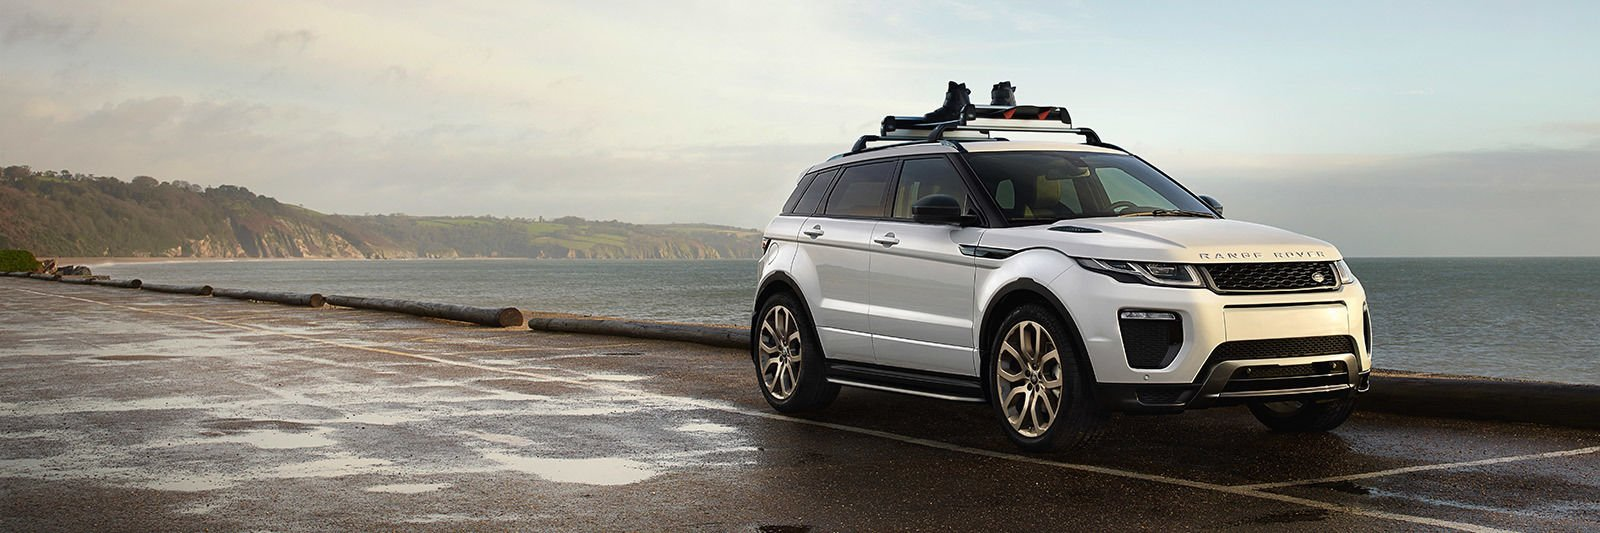 evoque range popular the rover accessories landrover for land